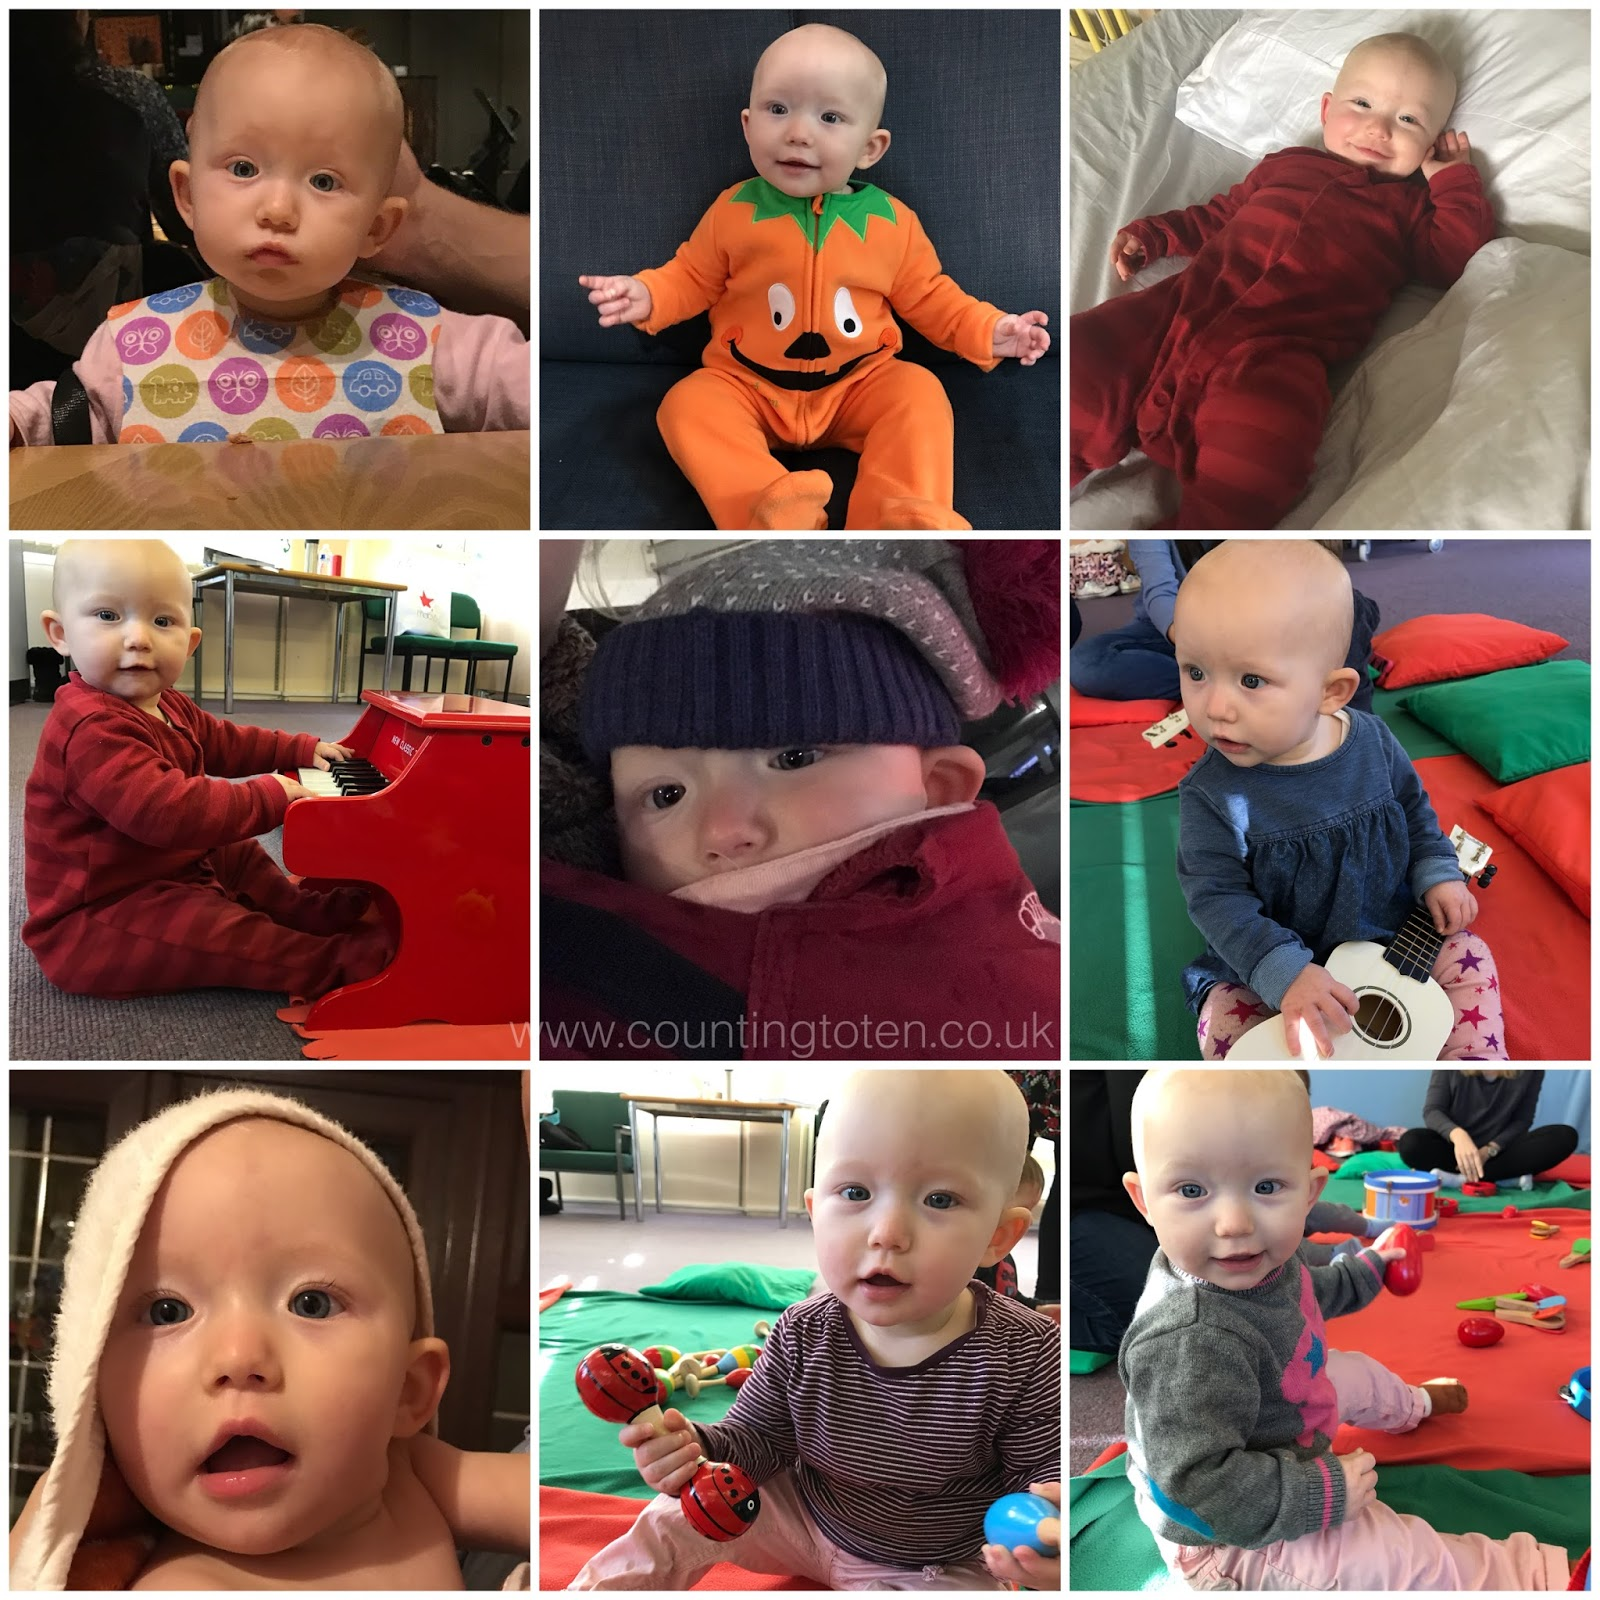 9 photographs of a baby girl aged 9 months includes eating, sitting in a pumpkin outfit, sitting in front of a mini piano, in a baby carrier and reclining on a white bed